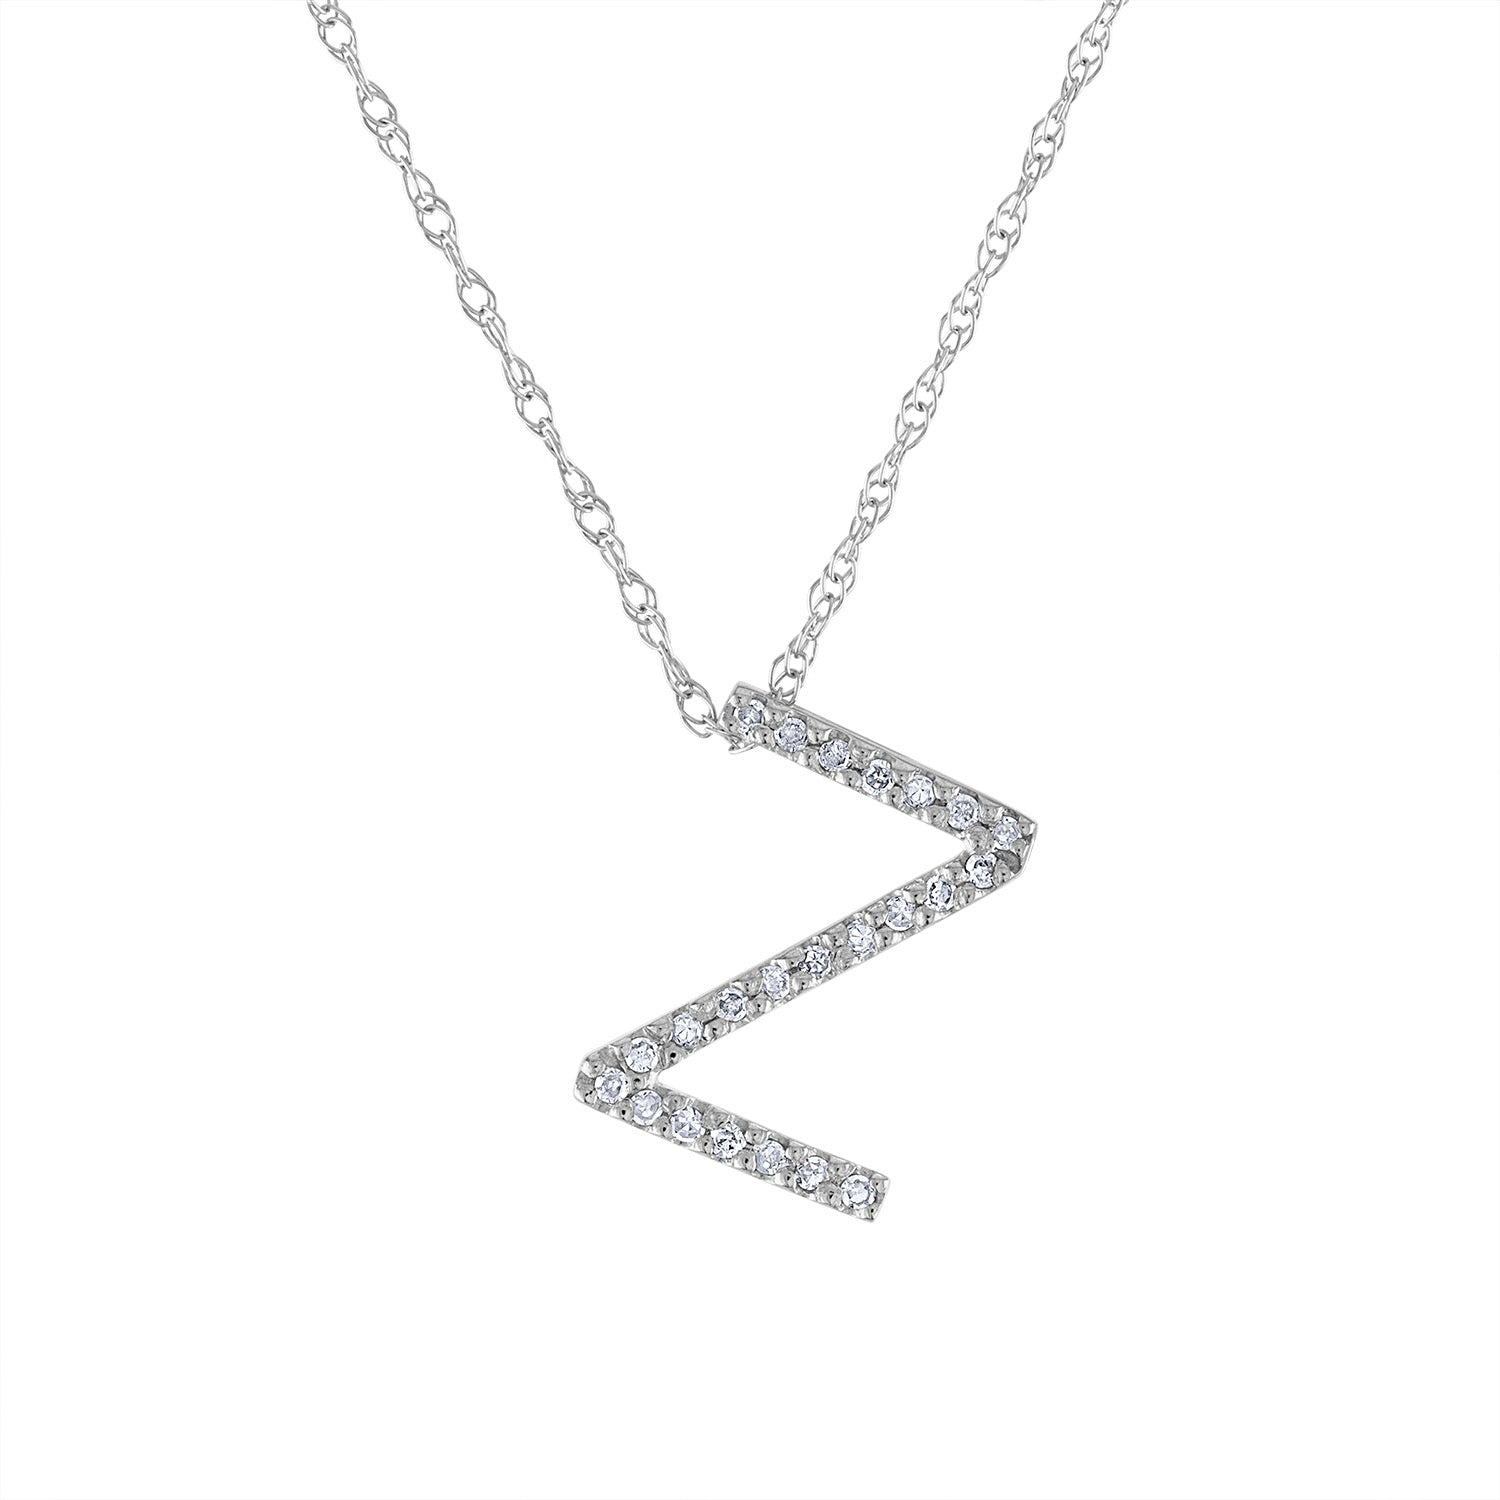 14k White Gold diamond initial Z necklace